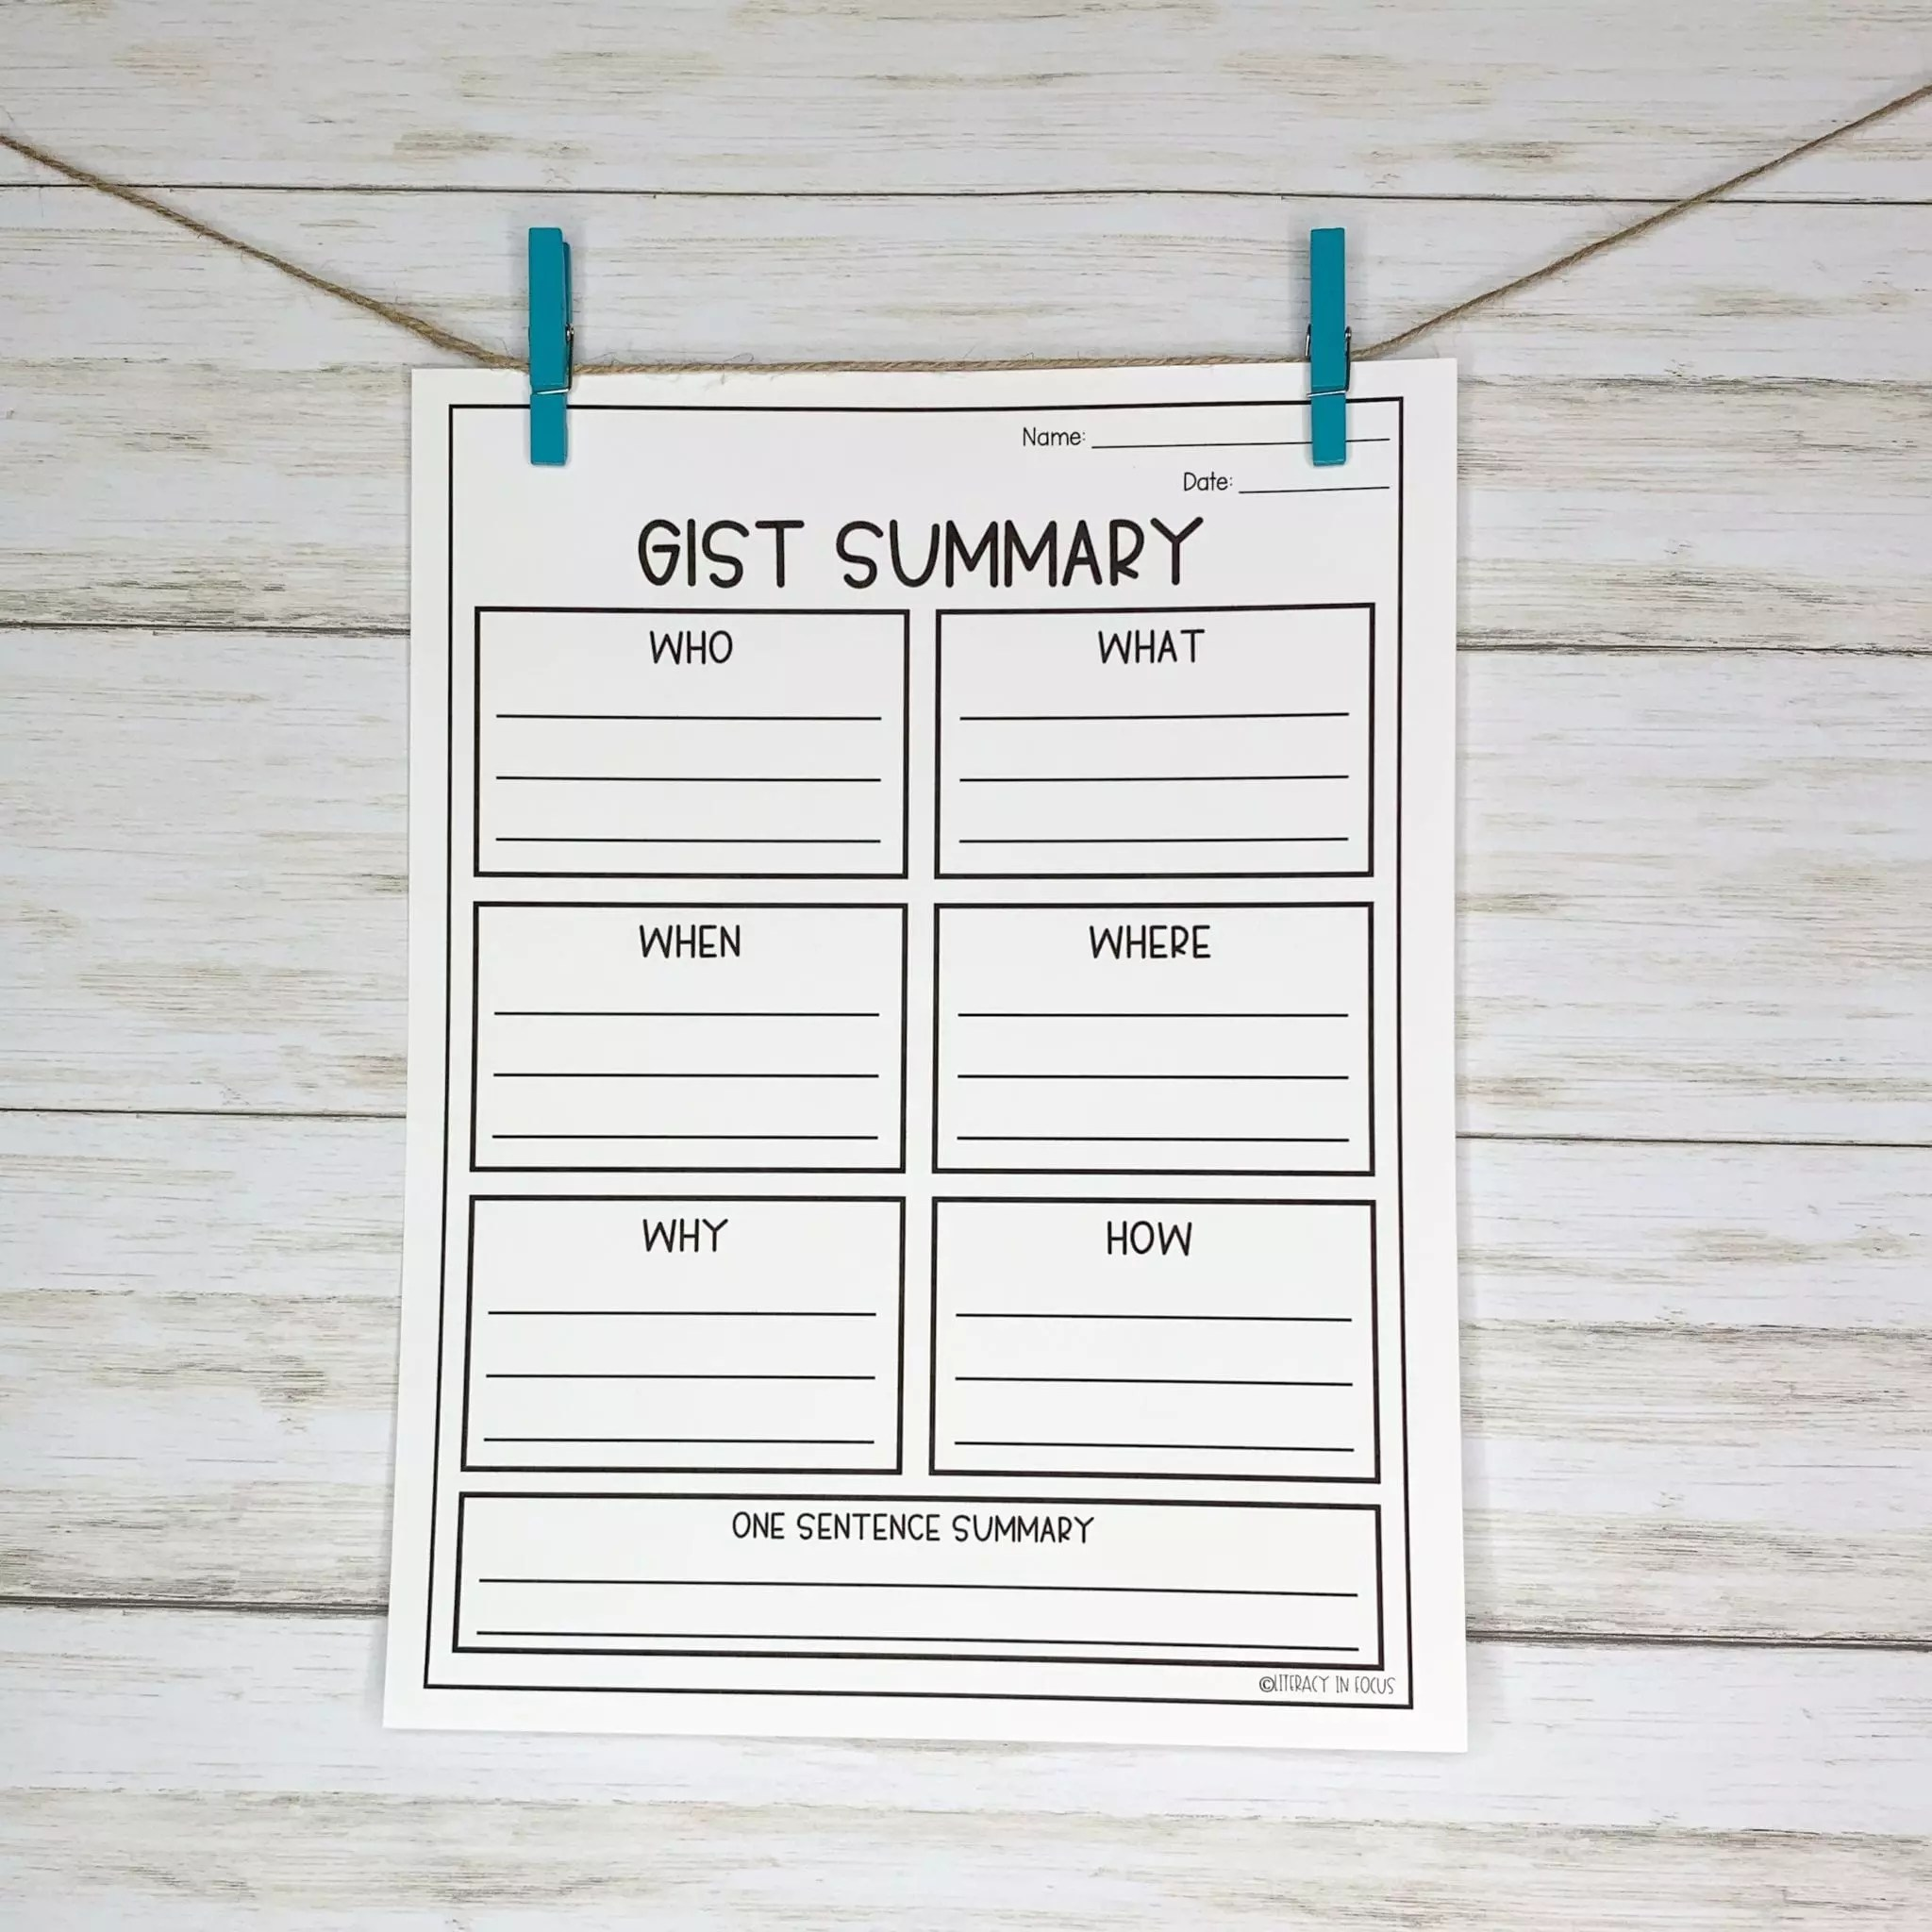 10 Graphic Organizers For Summary Writing